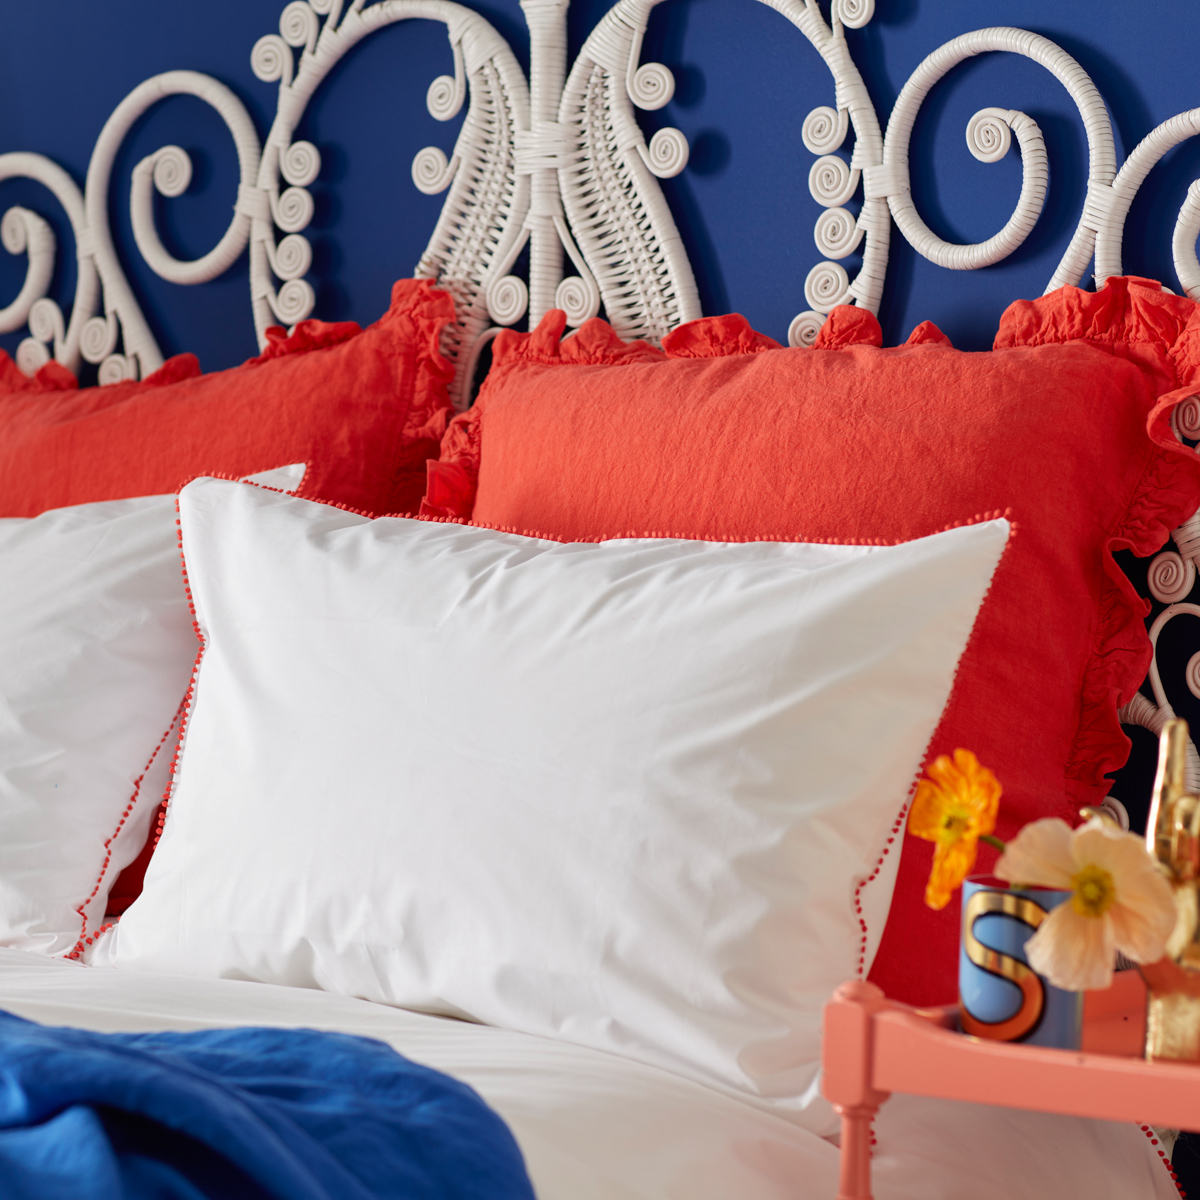 pantone colour of the year living coral features in this pom pom fringed bedlinen designed by sophie robinson for the secret linen store